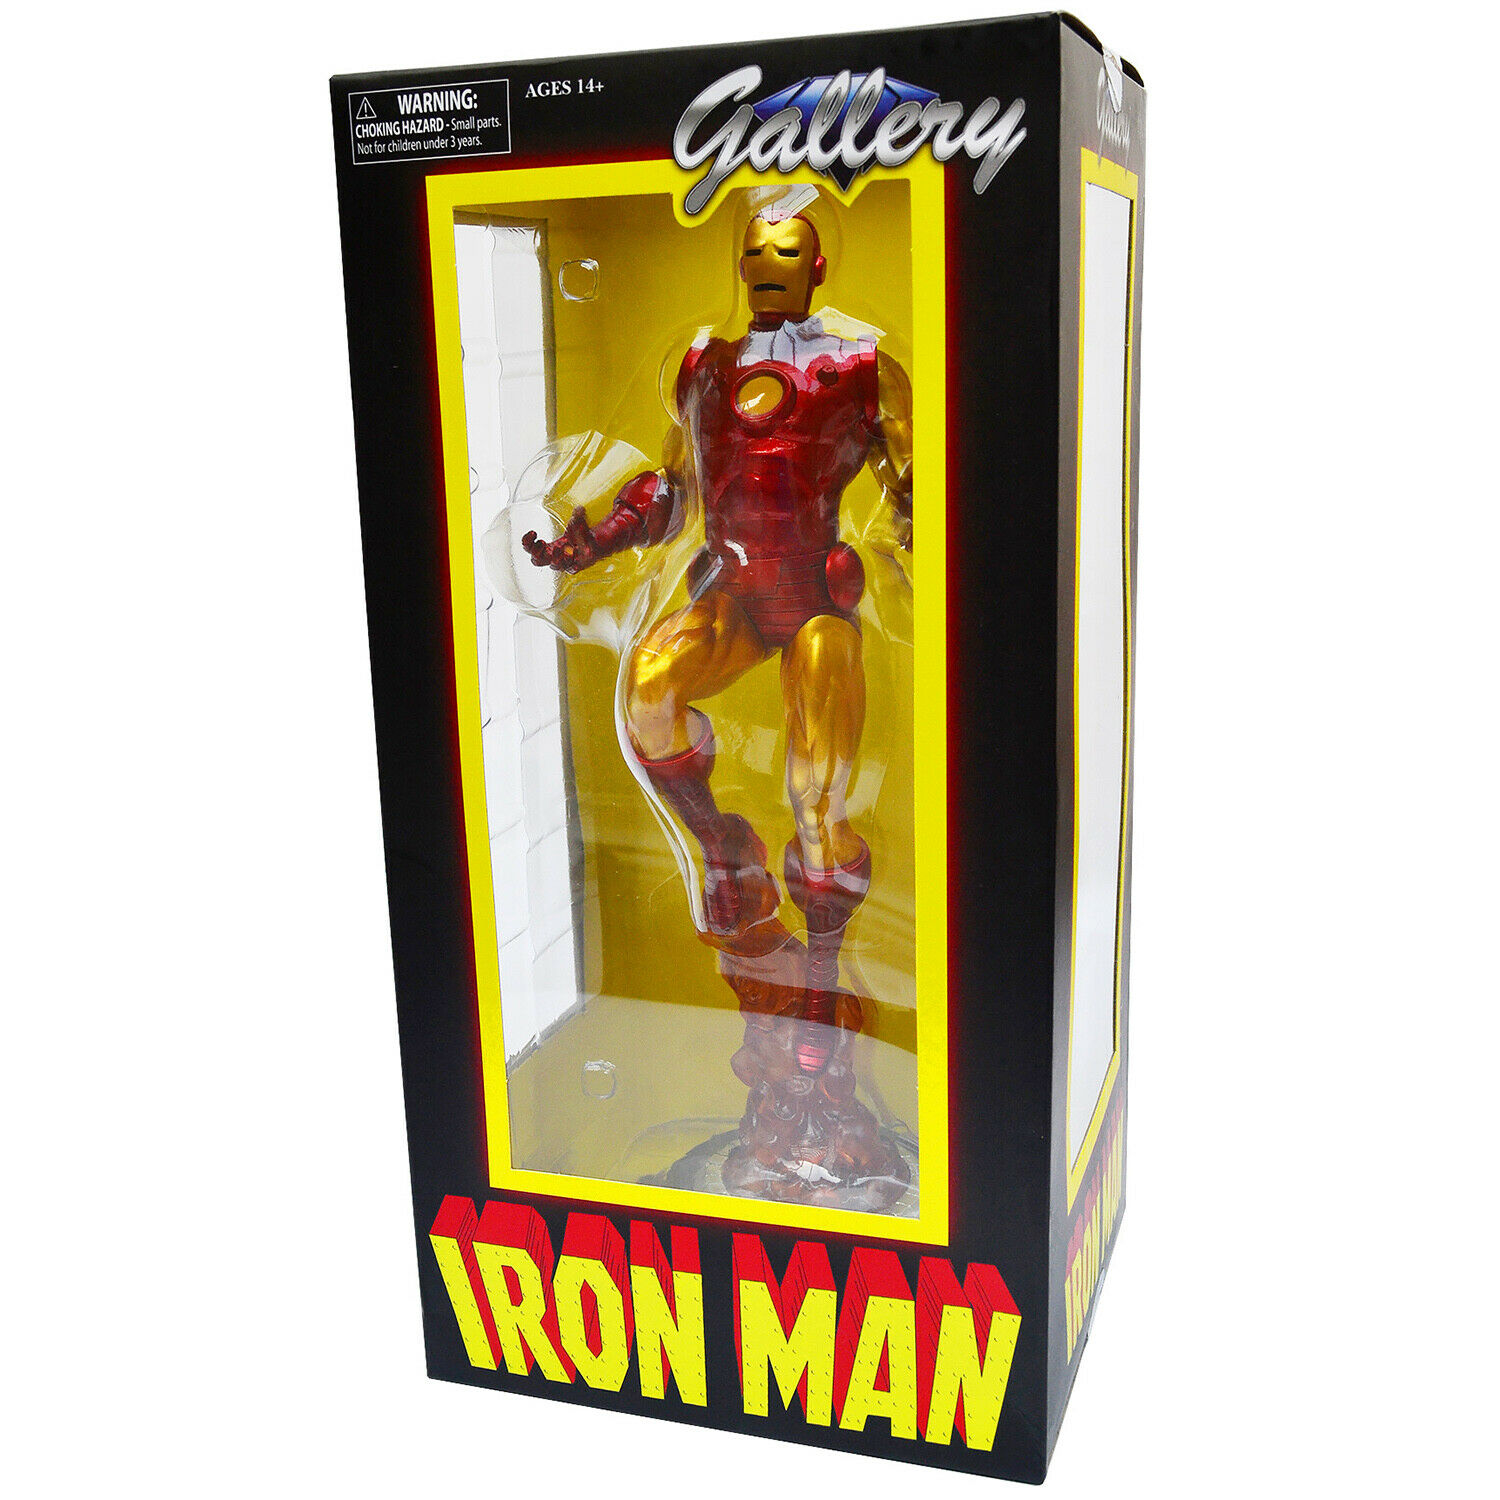 Diamond Select Gallery Iron Man Retro Marvel Coleccionable De 11  Estatua PVC  Nuevo En Caja Sellada